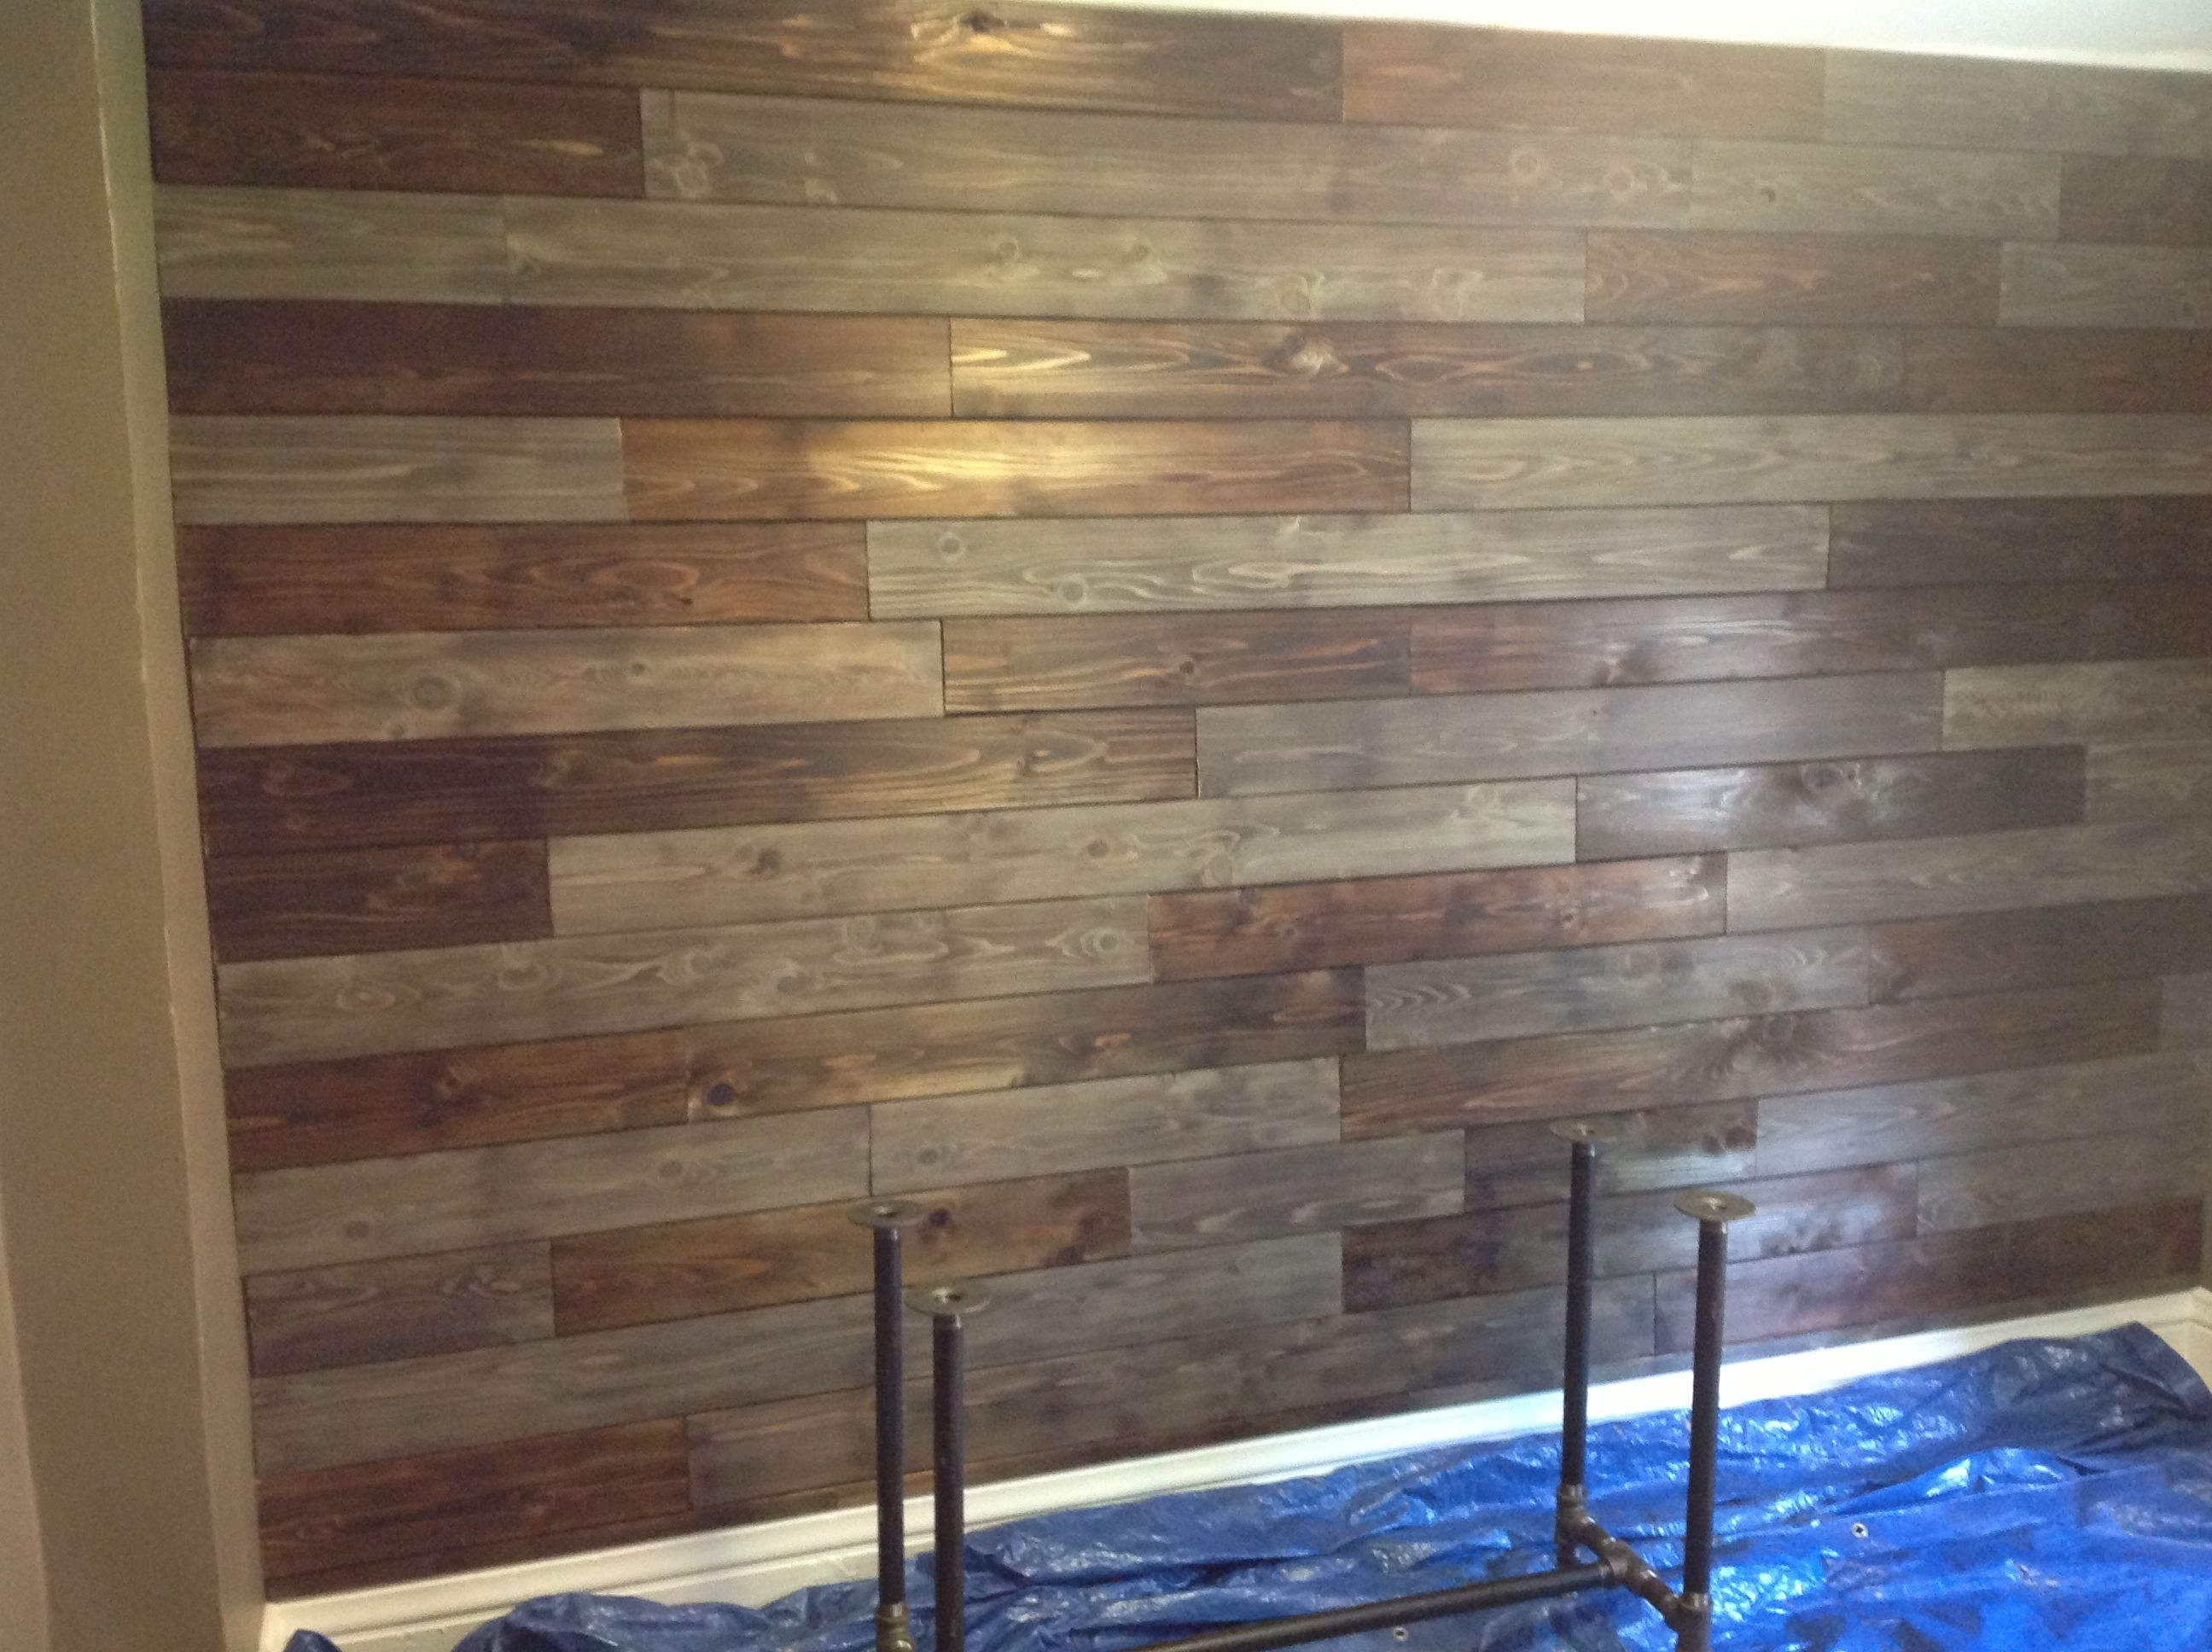 Wood Wall Using Cedar Fencing Burn The Cedar With A